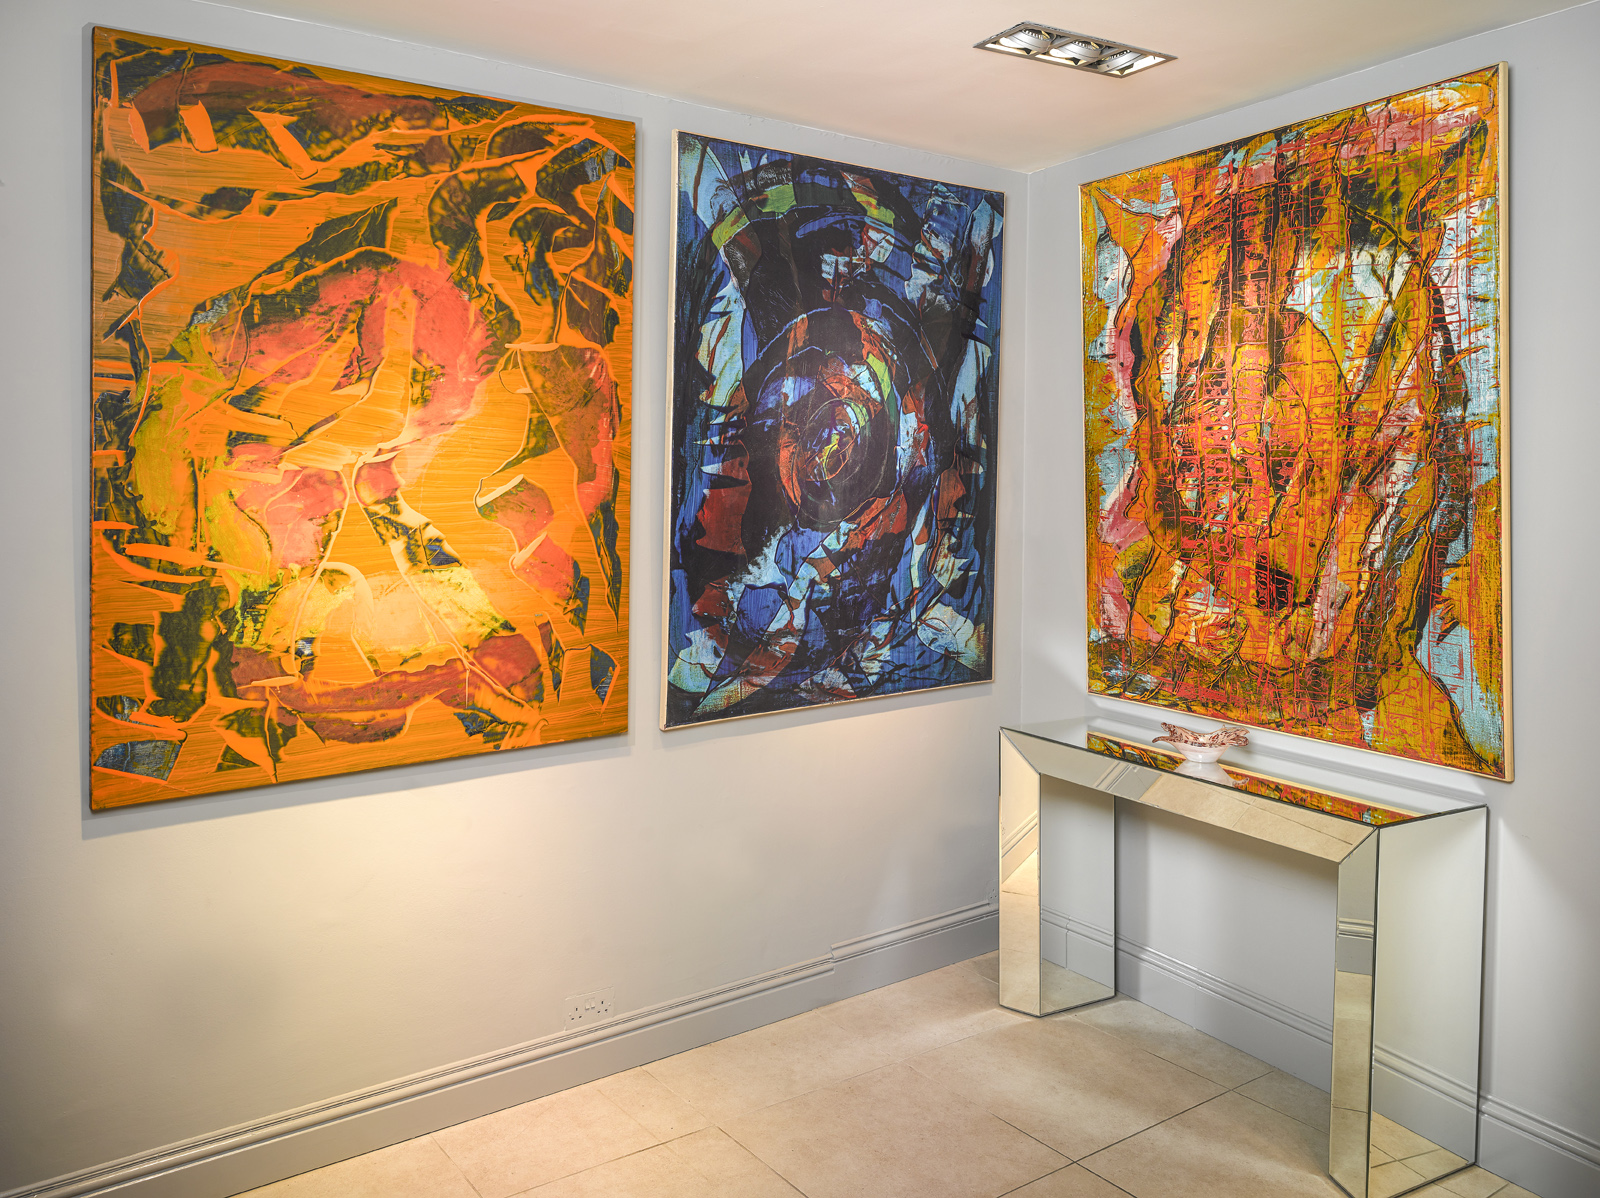 Interiors & Installations Gallery